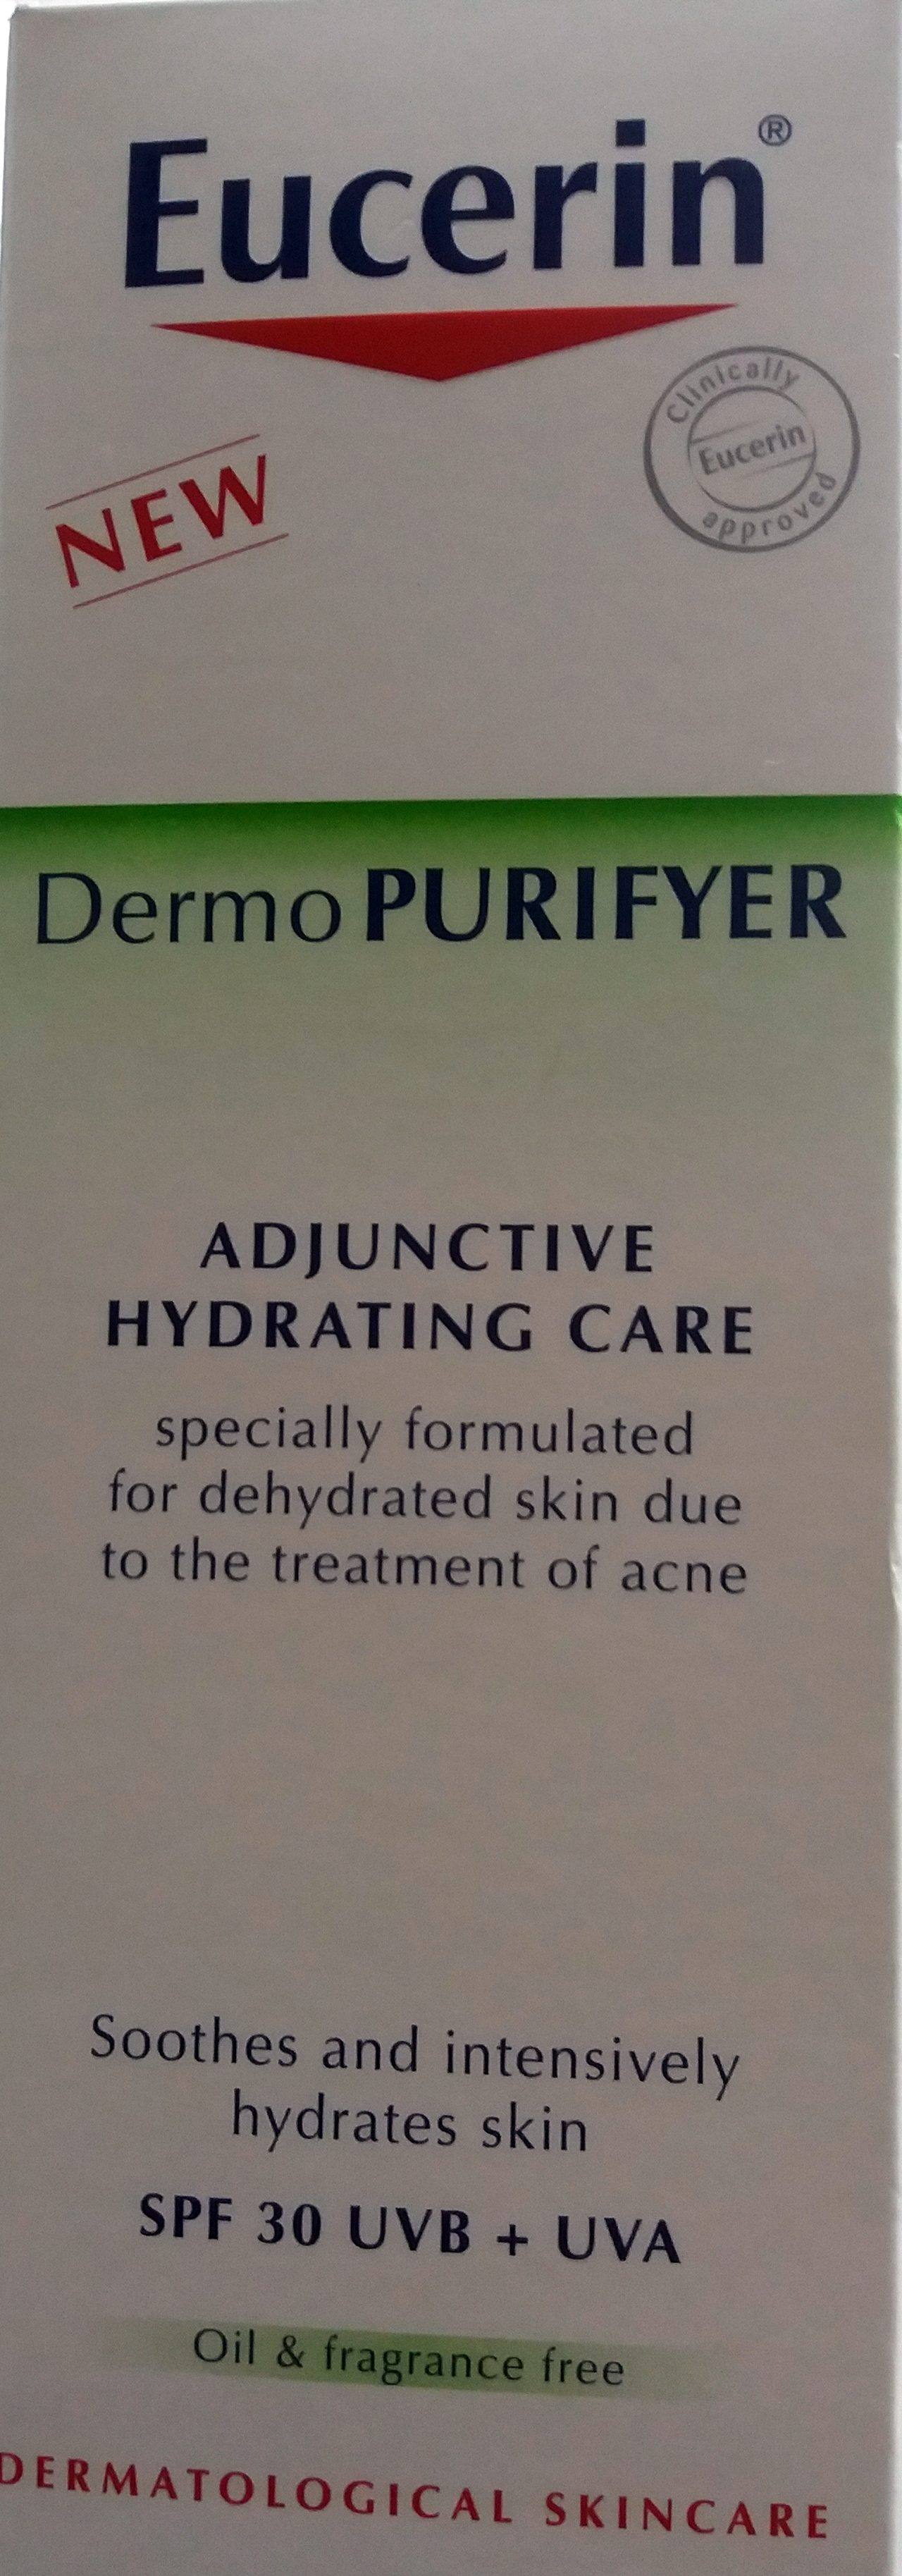 dermo PURIFYER adjunctive hydrating care - Product - en